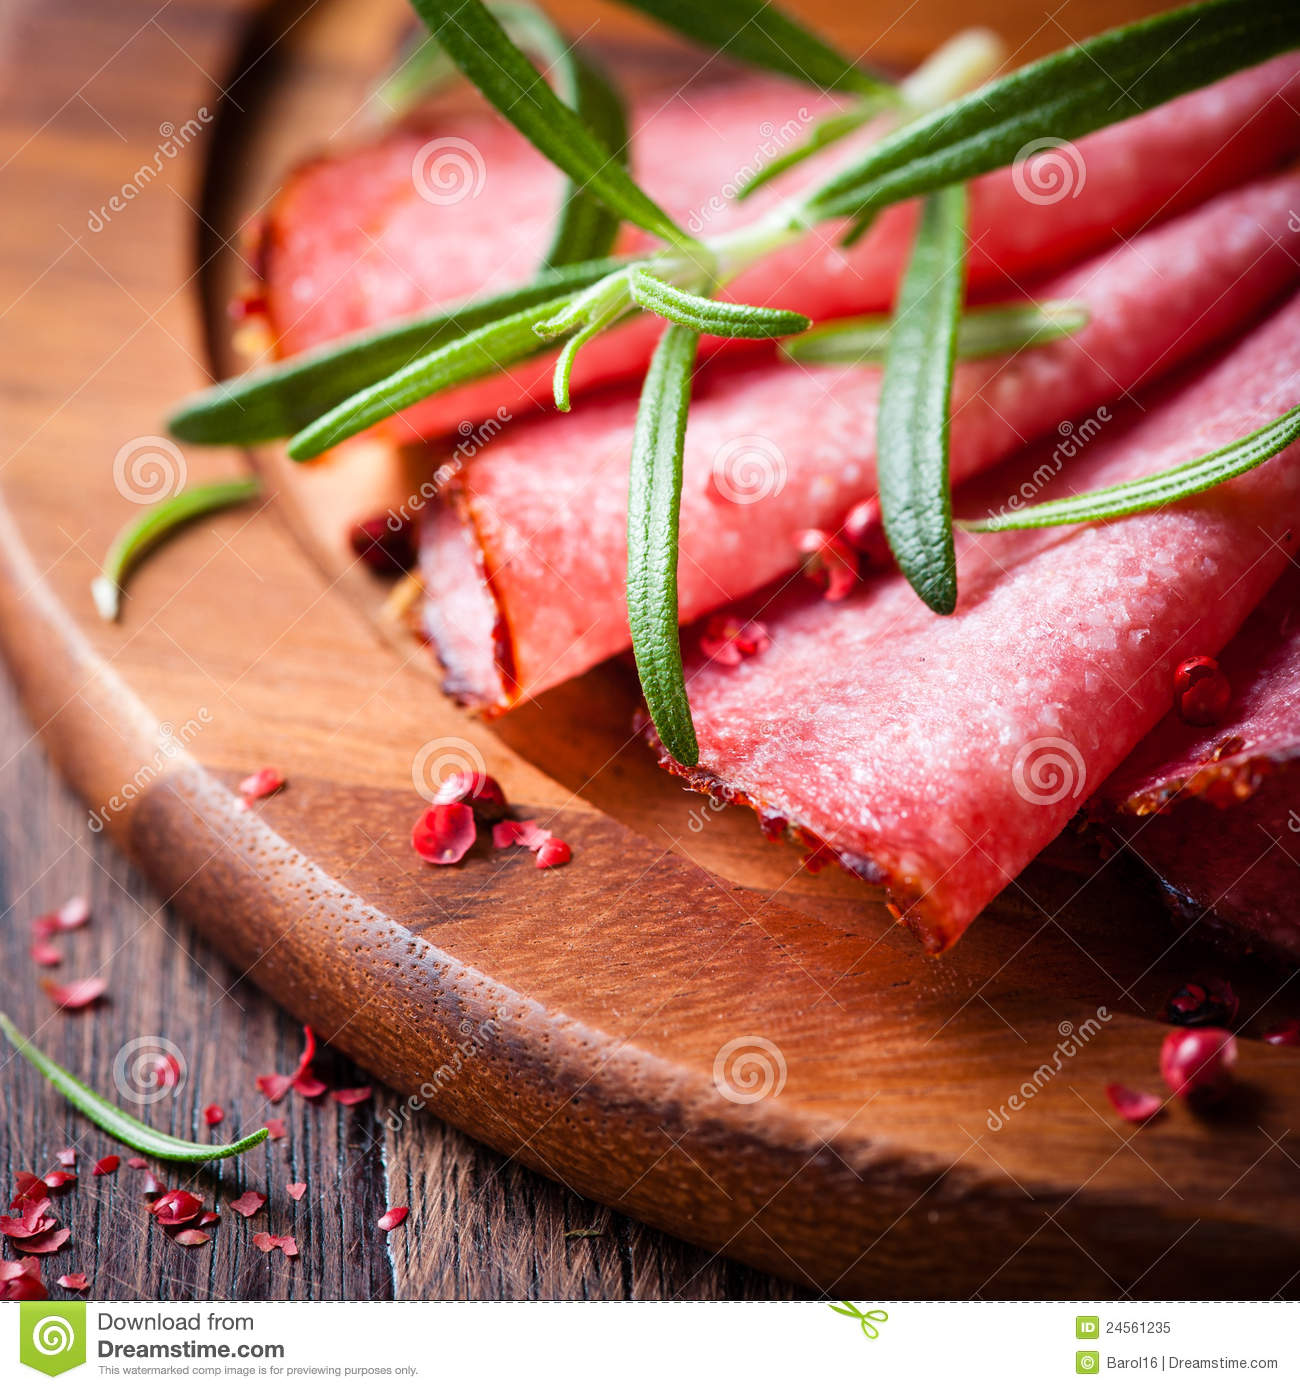 Salami with Rosemary